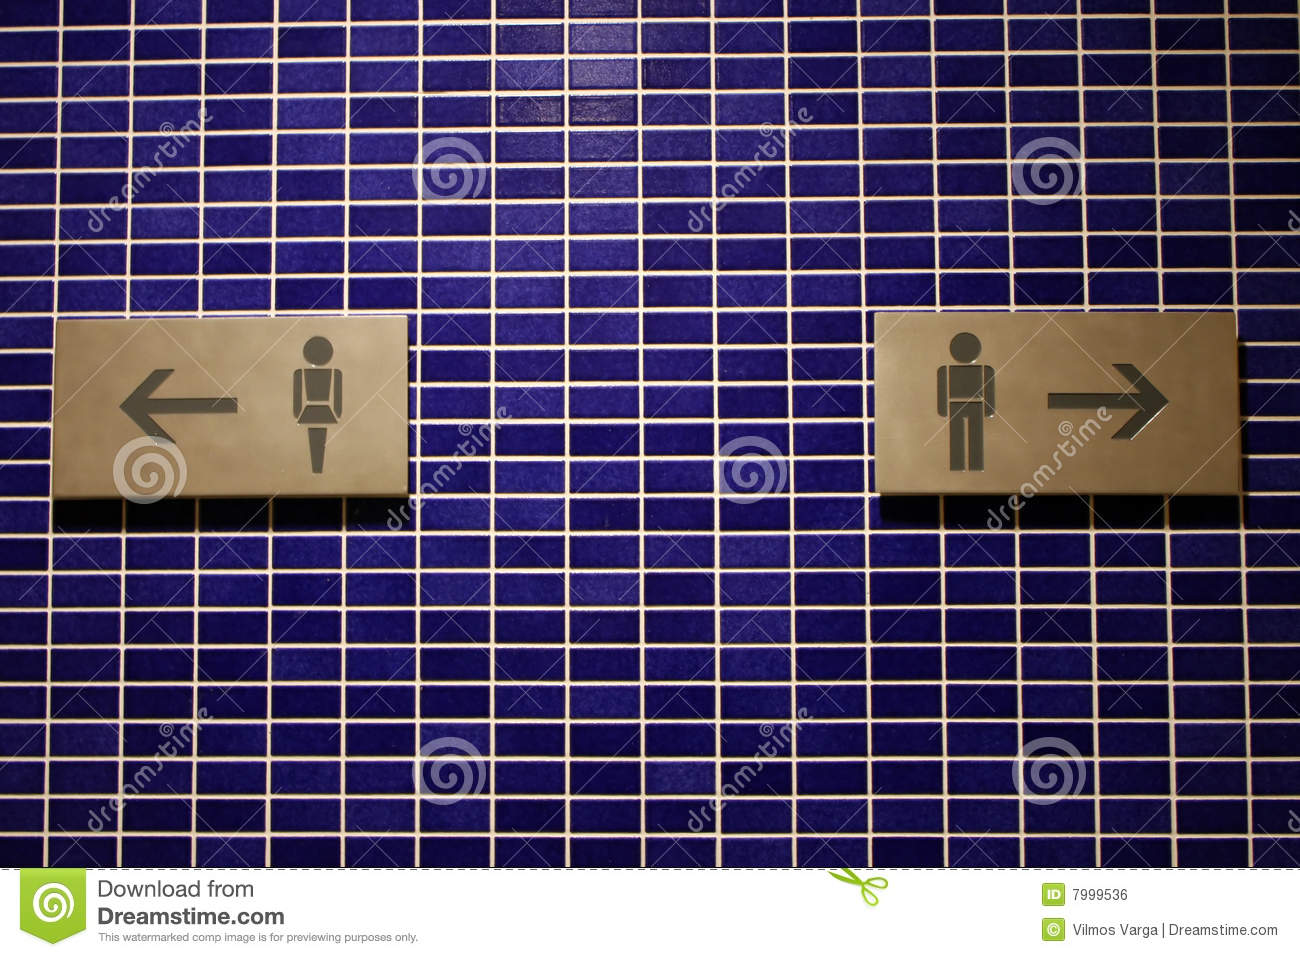 Blue tiled wall with restroom signs and arrows